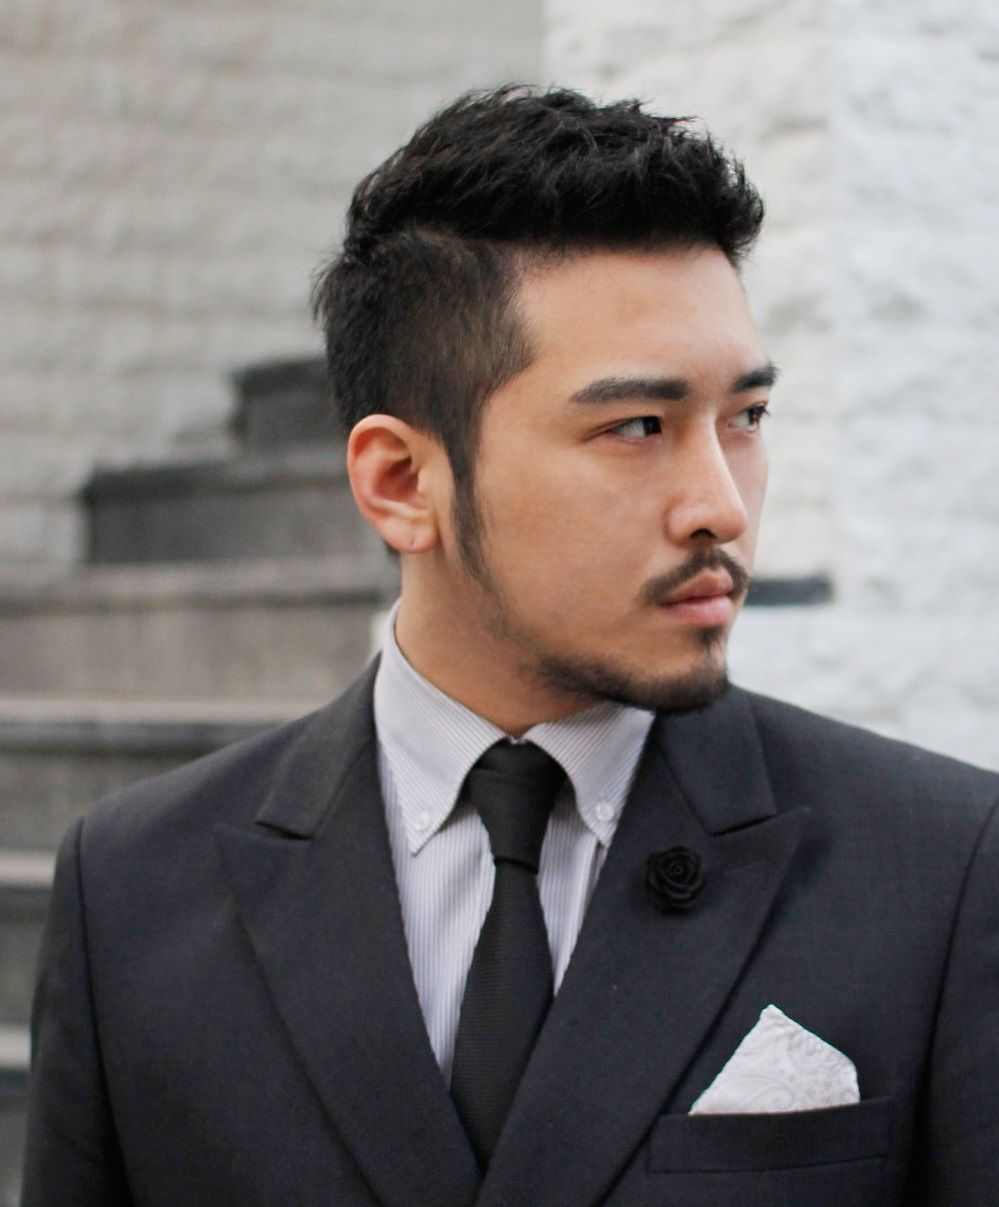 Asian Male Hairstyles Latest Trendy Asian & Korean Hairstyles For Men 2017  Popular